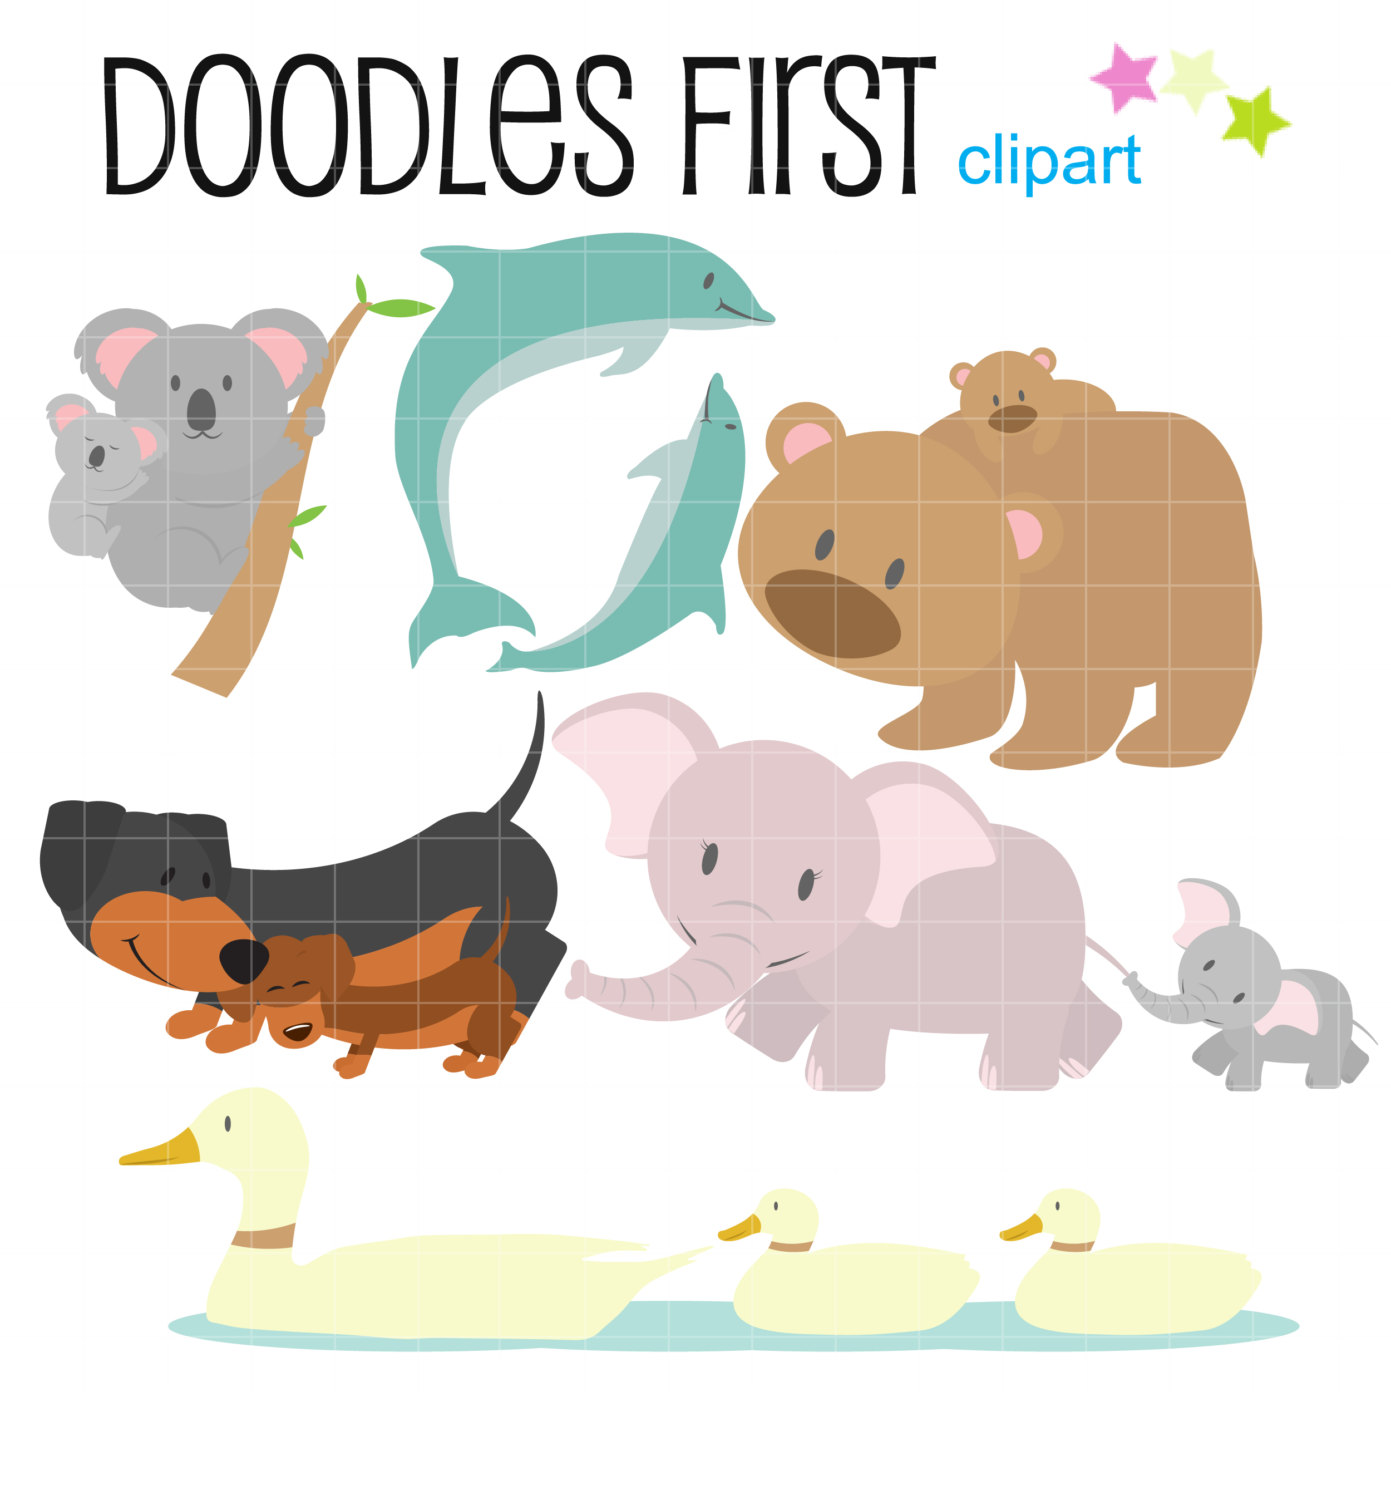 Mama baby animal clipart clip art transparent library Baby animal and mom clipart - ClipartFest clip art transparent library